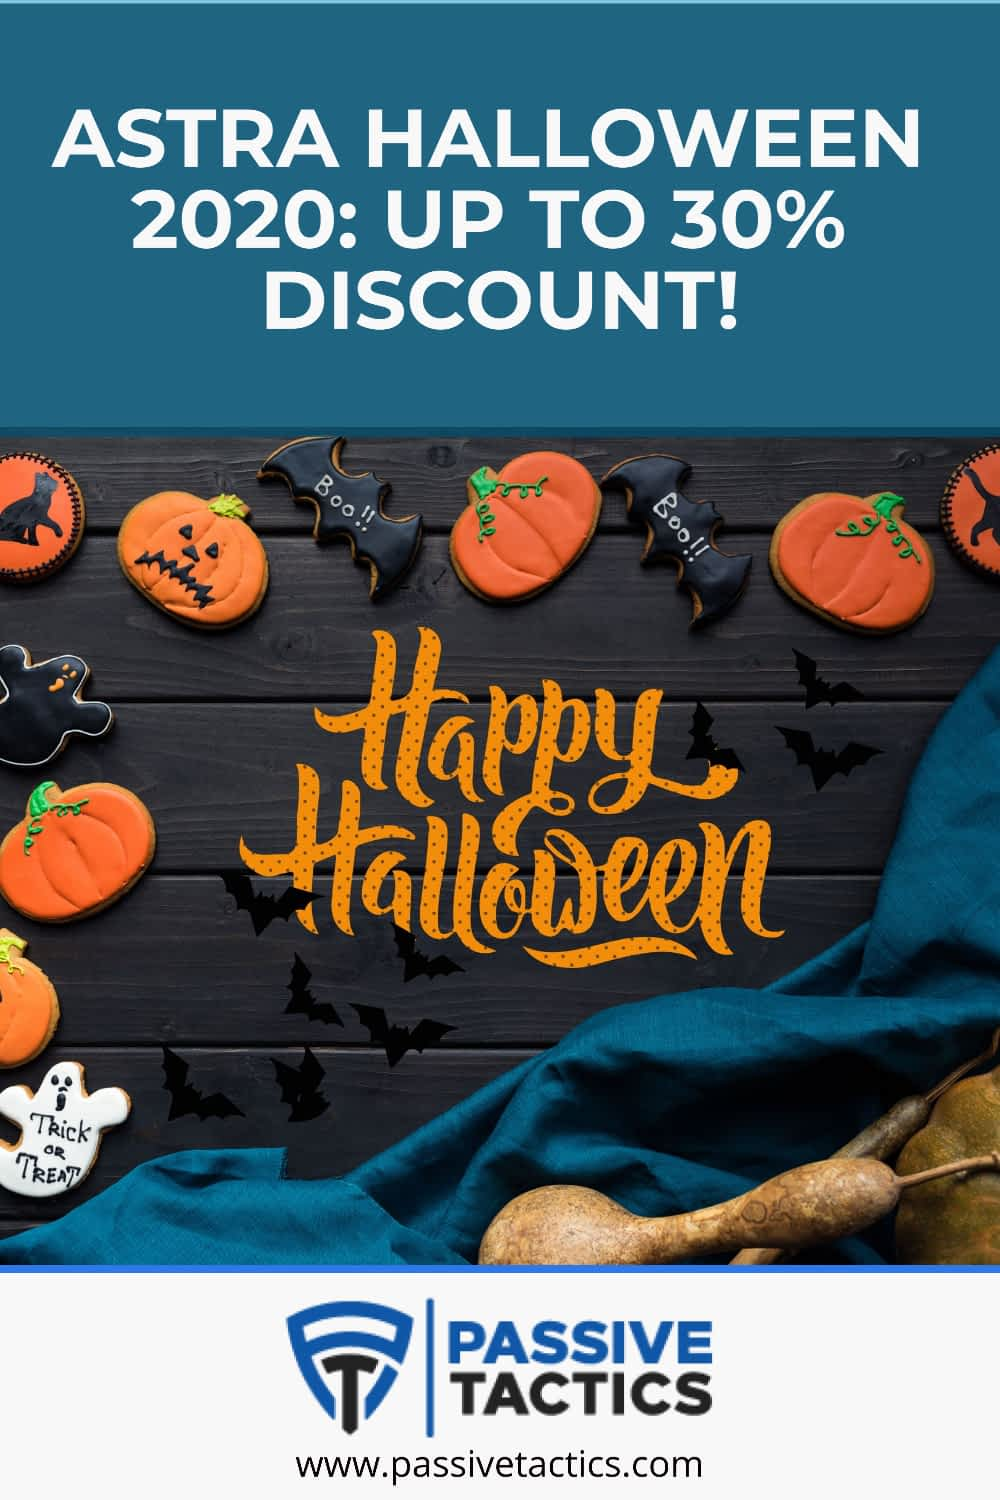 Astra Halloween Best Discount in 2020: Save Up to 30%!